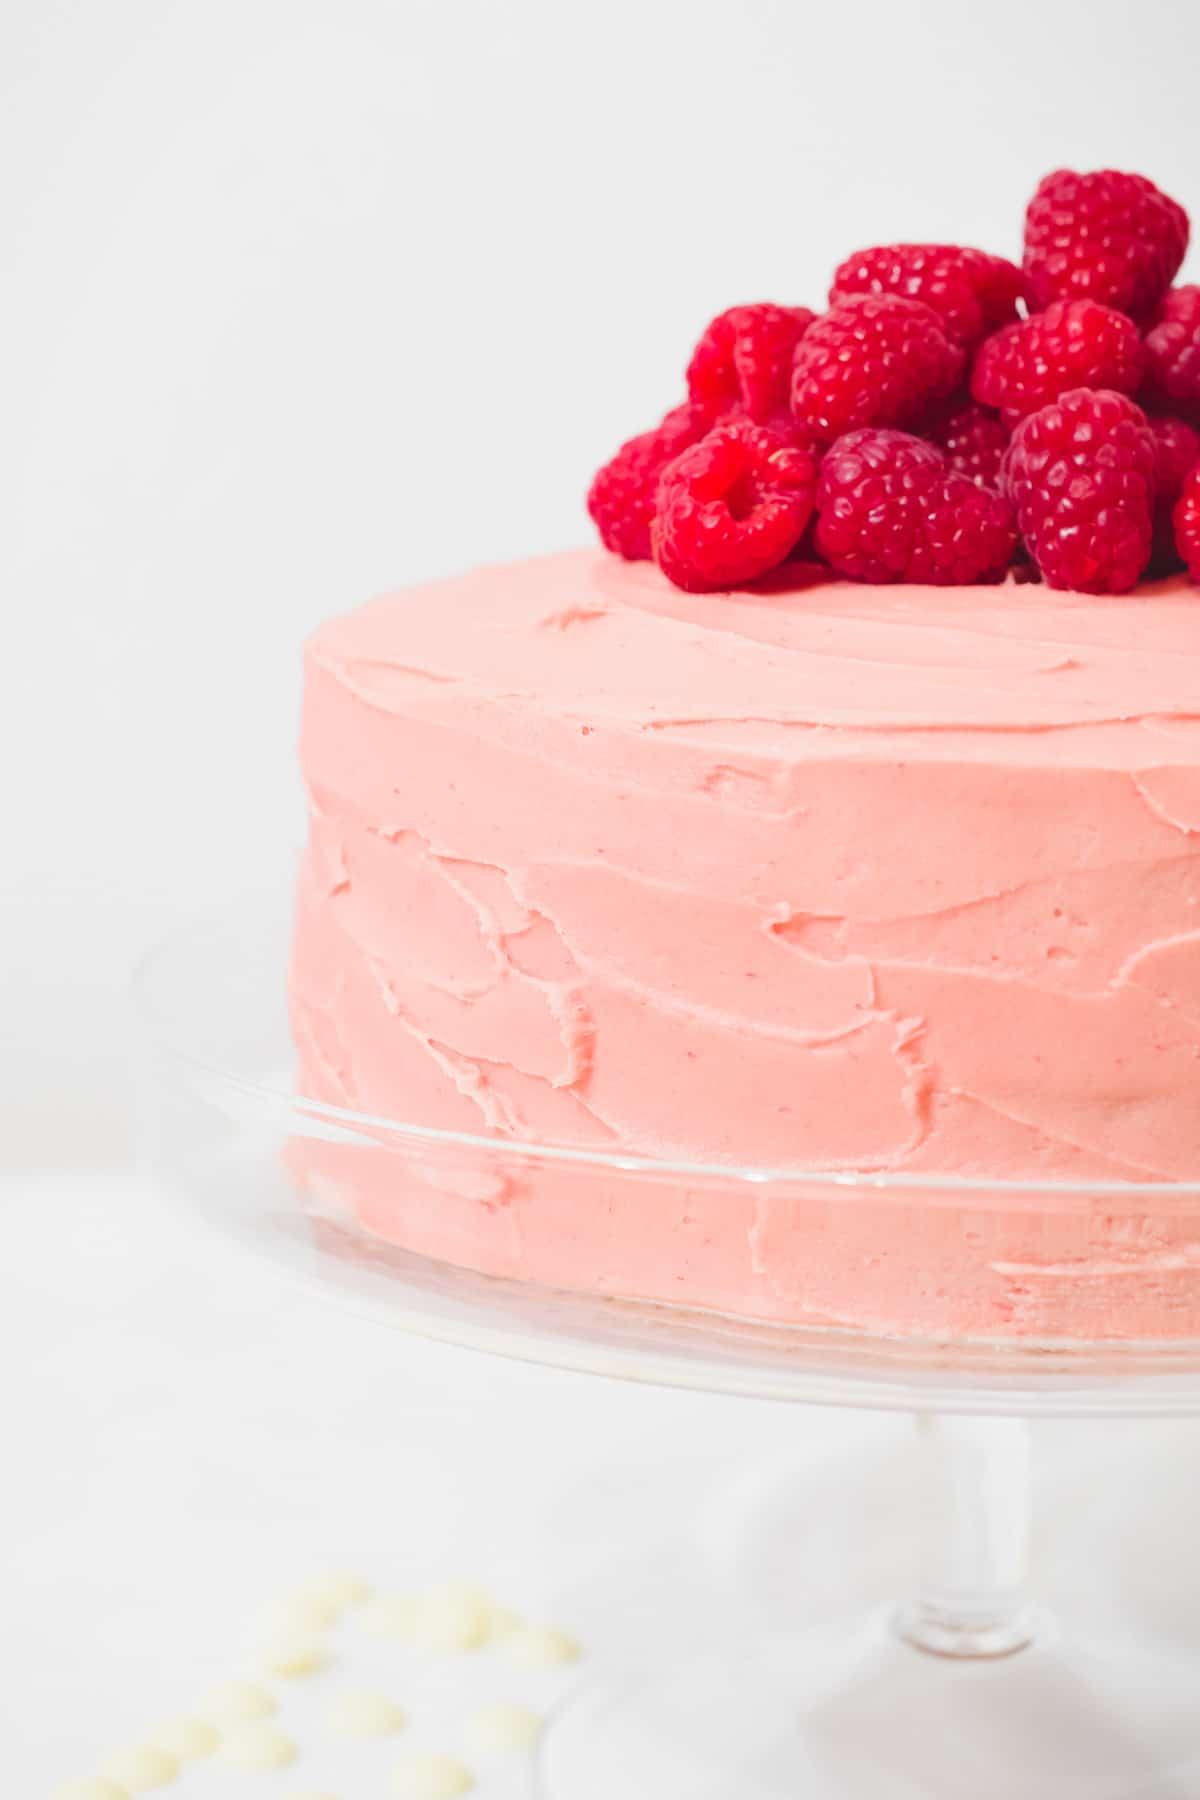 Side view of raspberry white chocolate cake with fresh raspberries piled on top